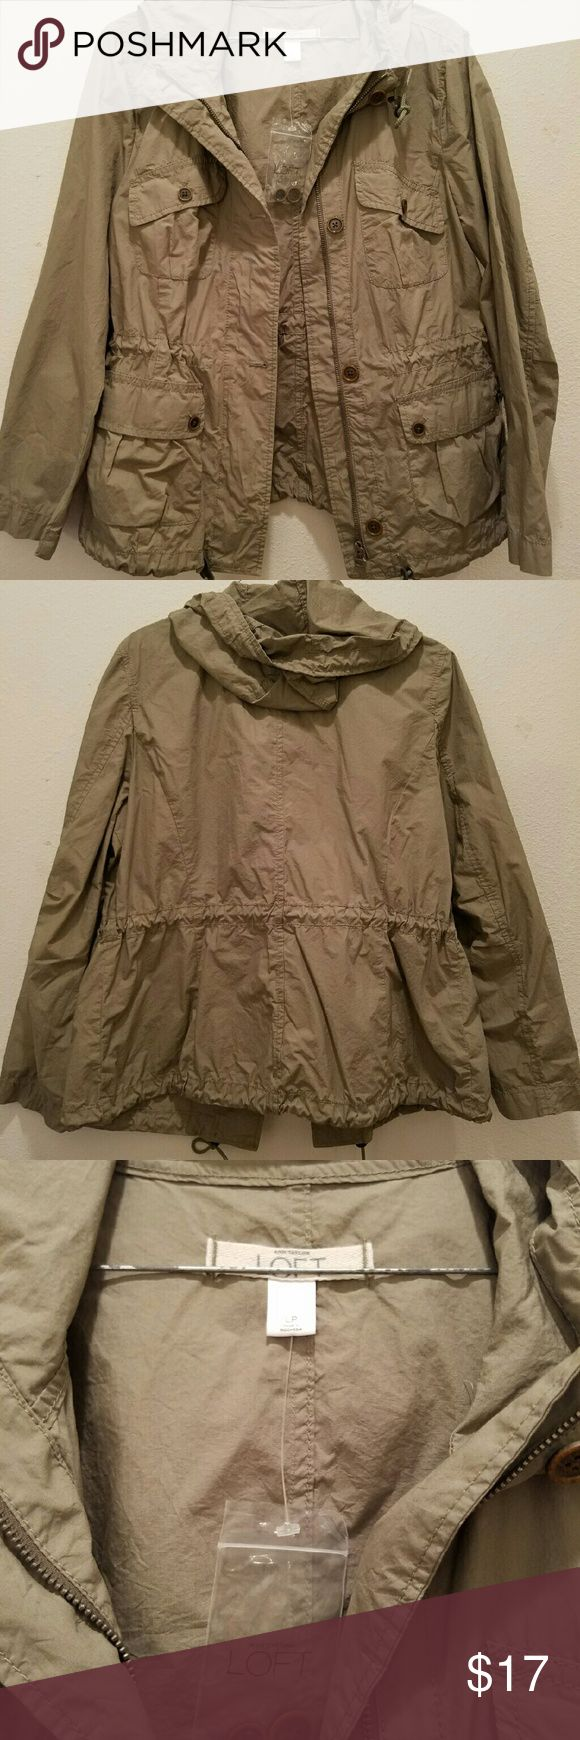 Ann Taylor Loft Jacket Beige womens jacket with four pockets on front and hoodie The Loft Jackets & Coats Utility Jackets